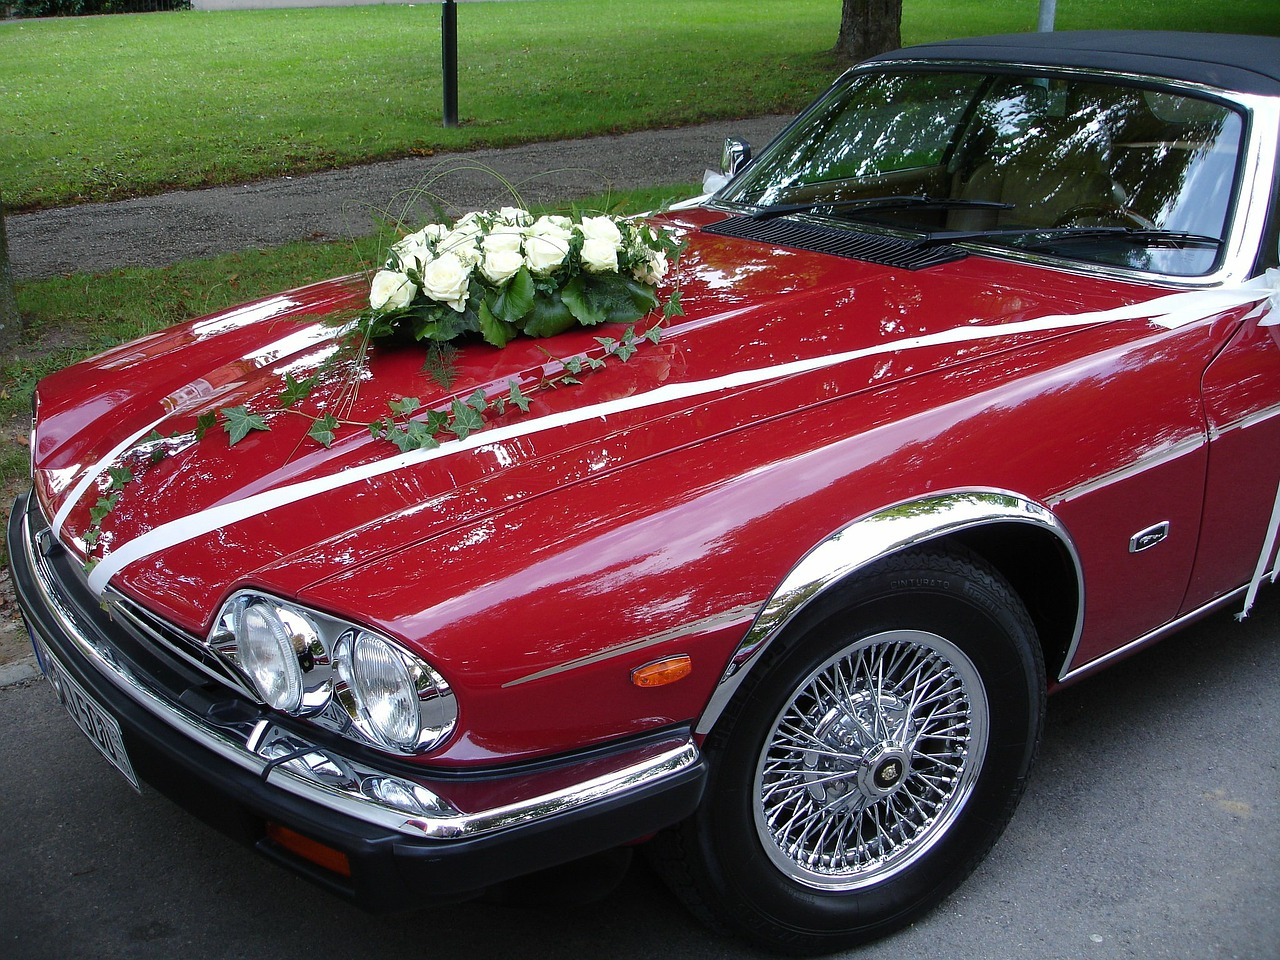 wedding-car-4156_1280